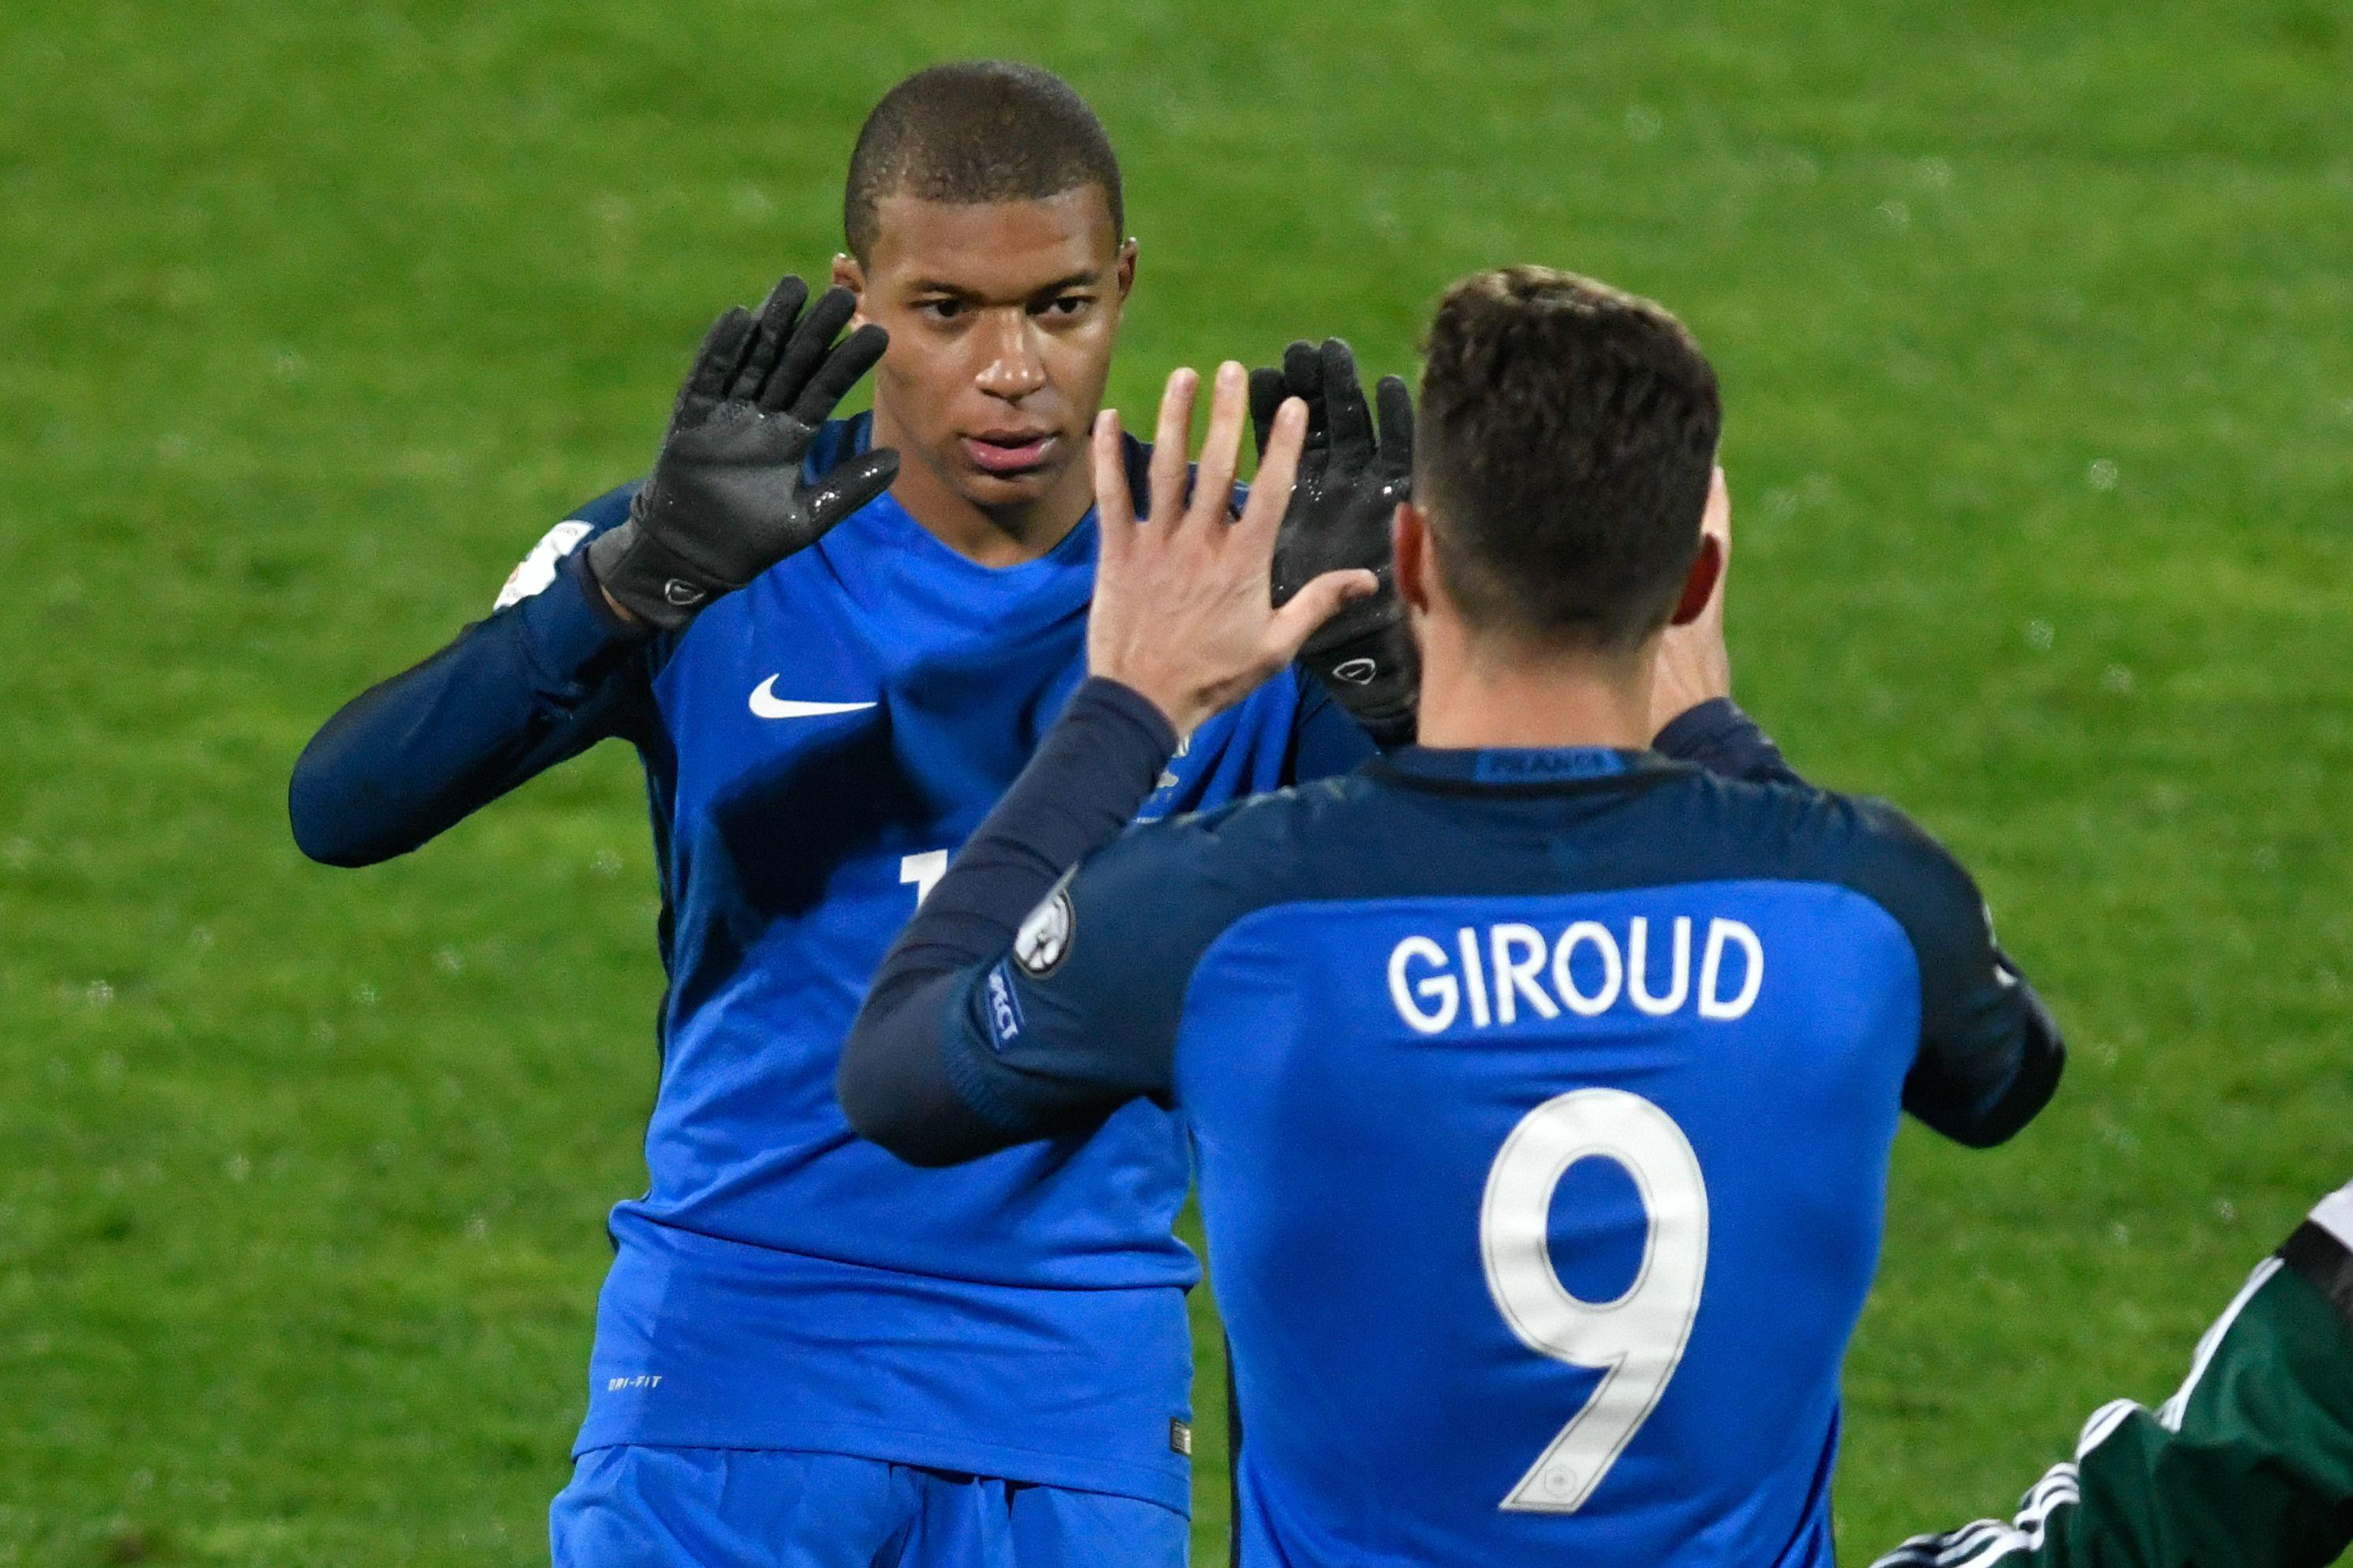 Giroud replaced Mbappe against Bulgaria with seven minutes to go